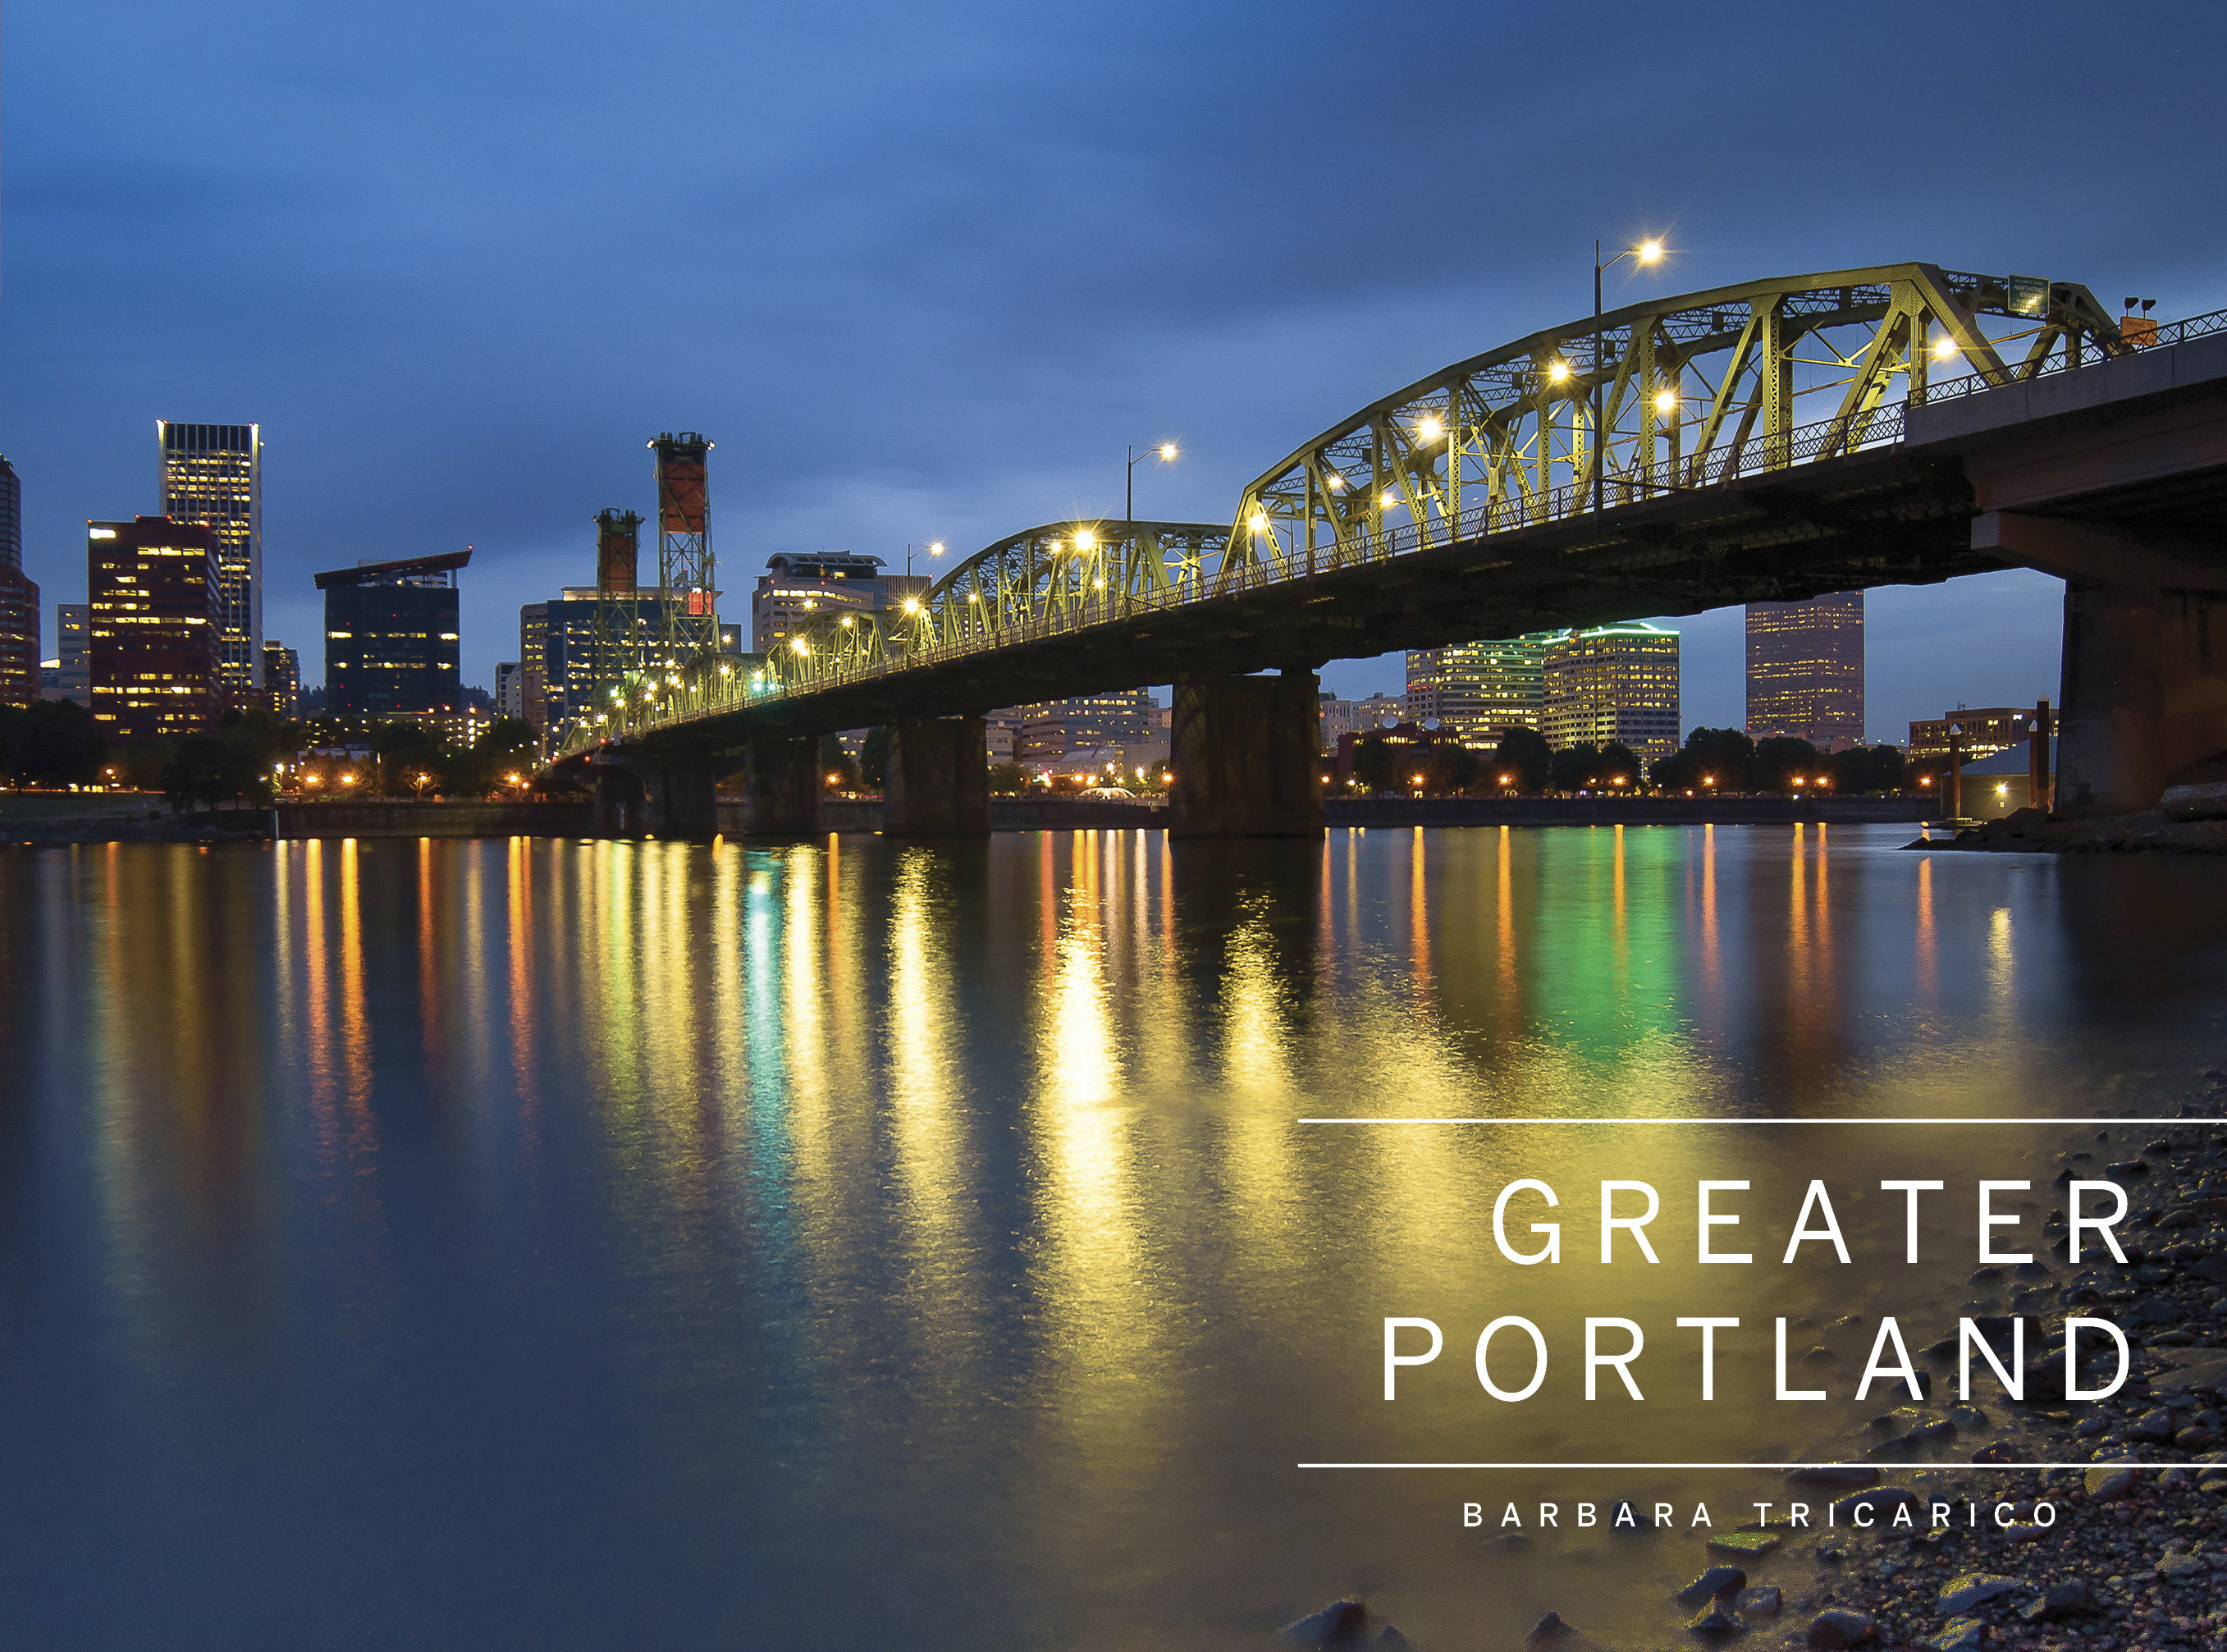 Greater Portland by Barbara Tricarico Photography